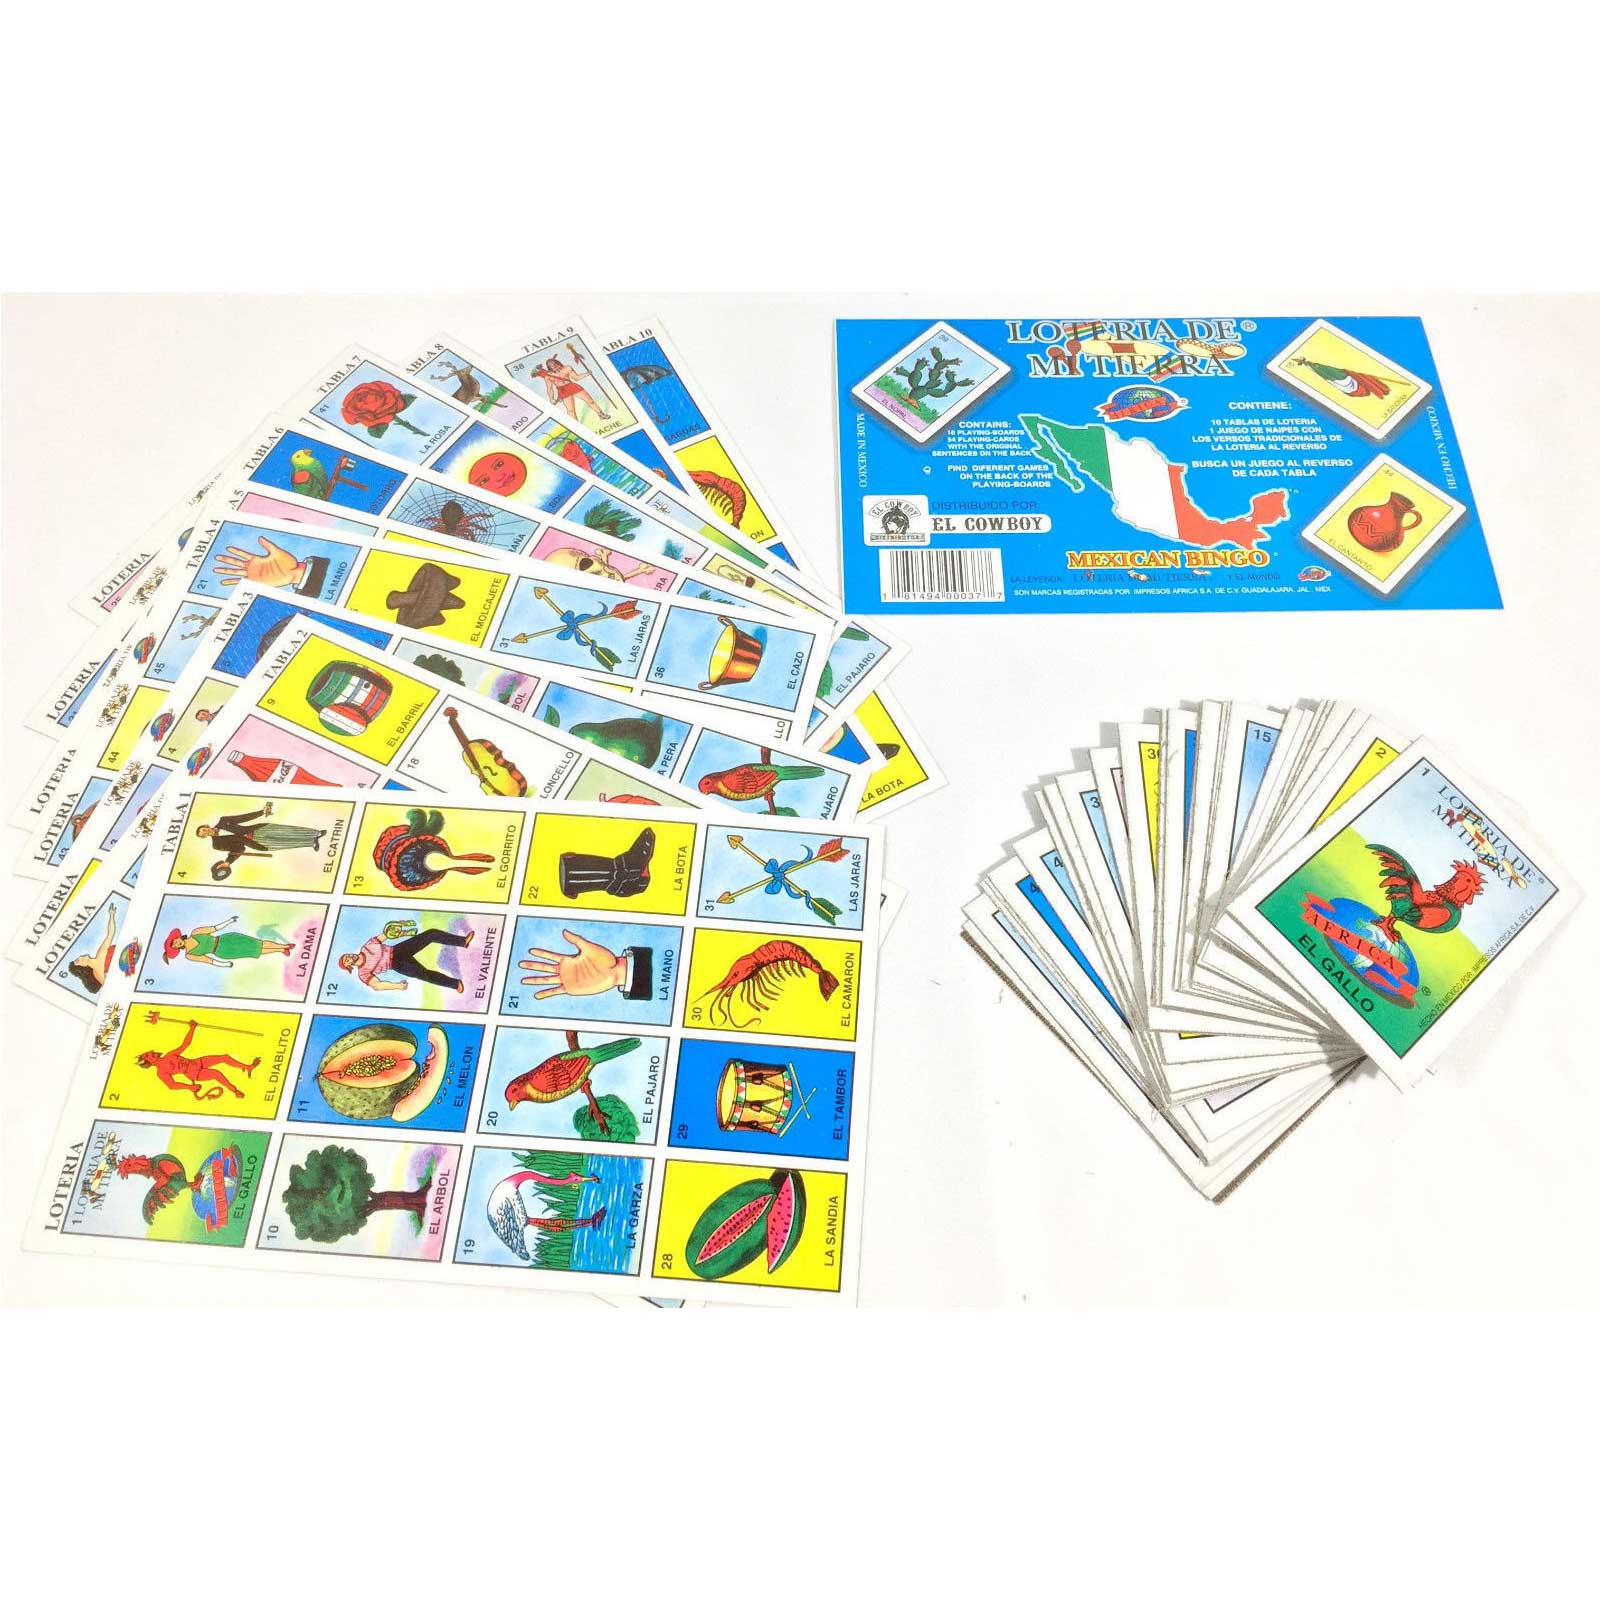 LA LOTERIA extra playing cards Mexican Bingo